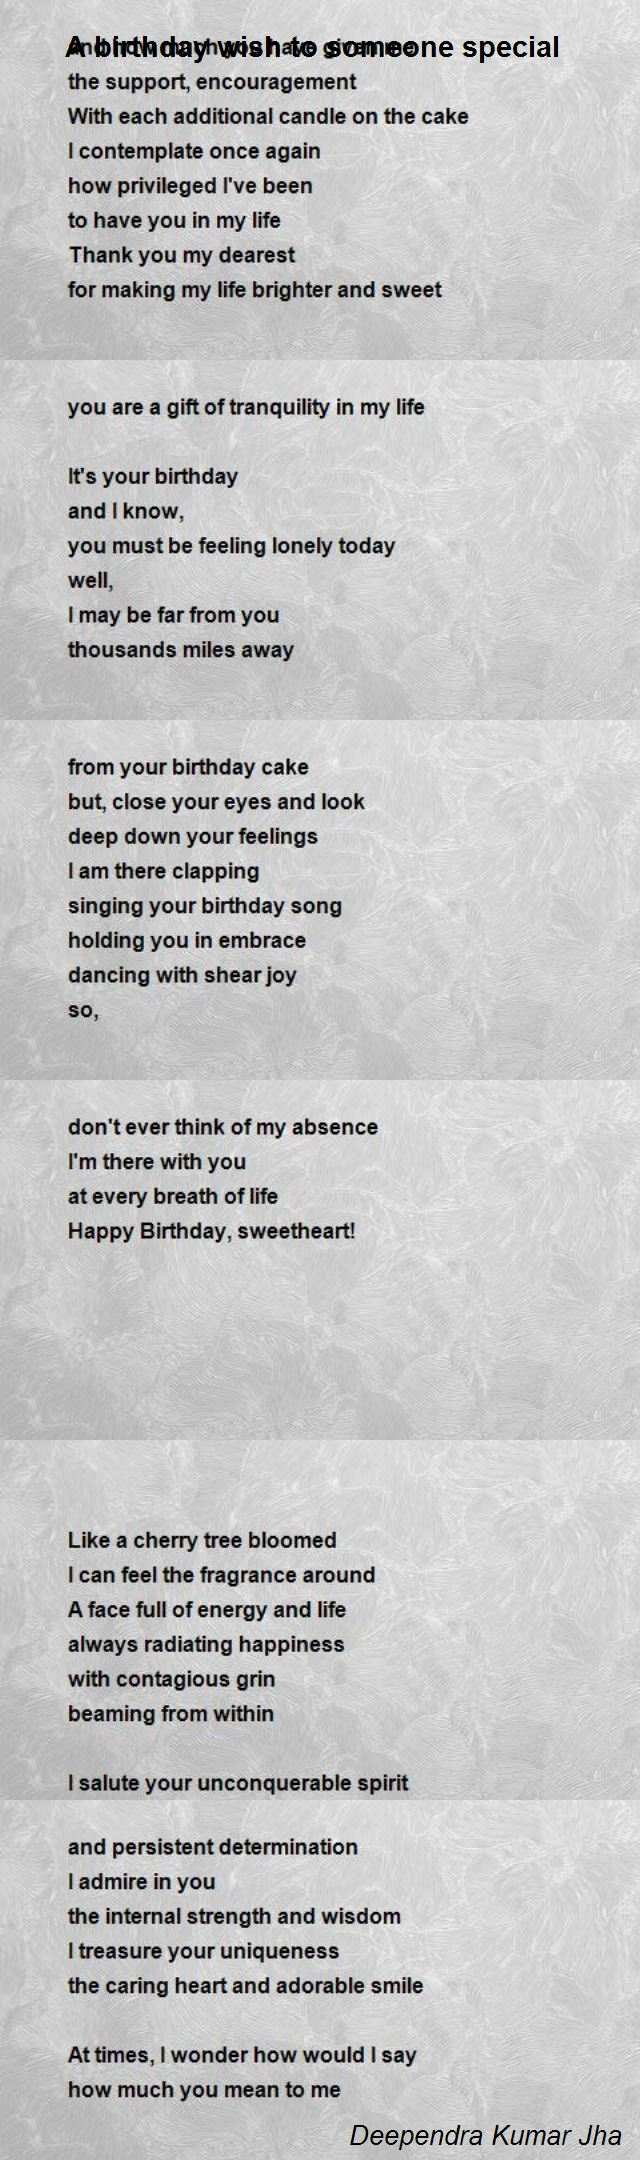 birthday wishes for someone special poem ; a-birthday-wish-to-someone-special